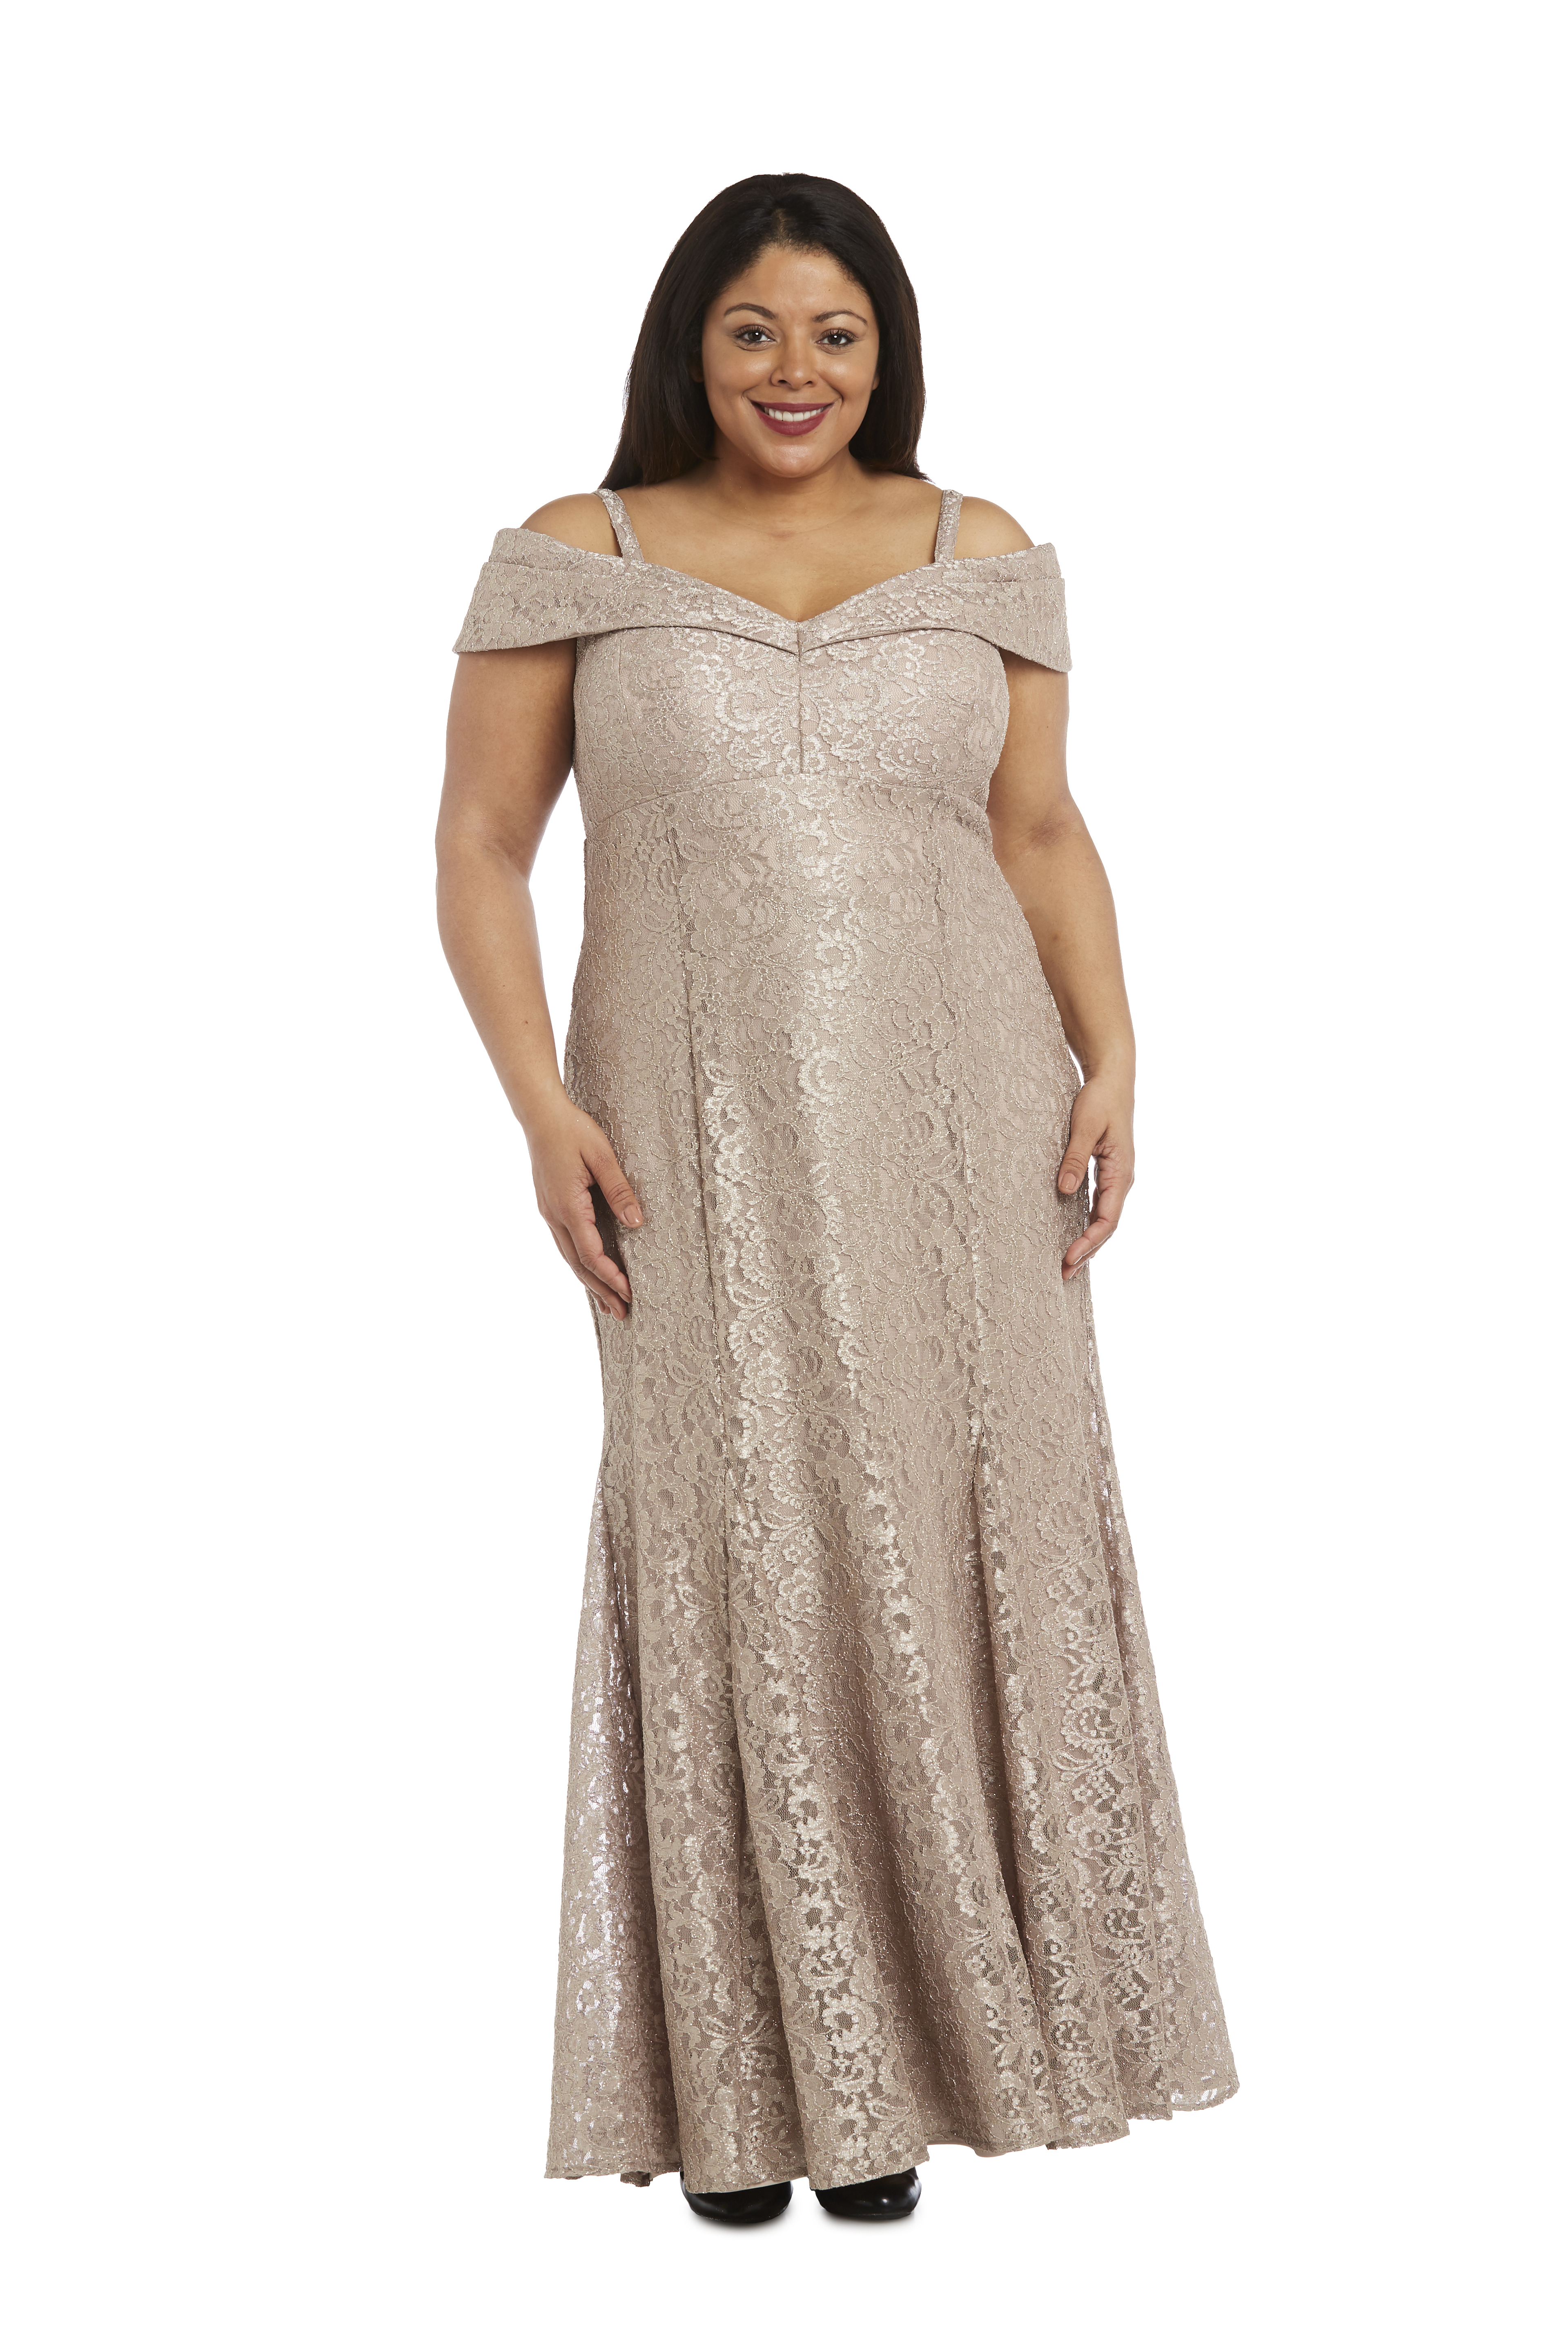 Off the Shoulder Glitter Lace Gown Godet Plts at Hem - Champagne - Front